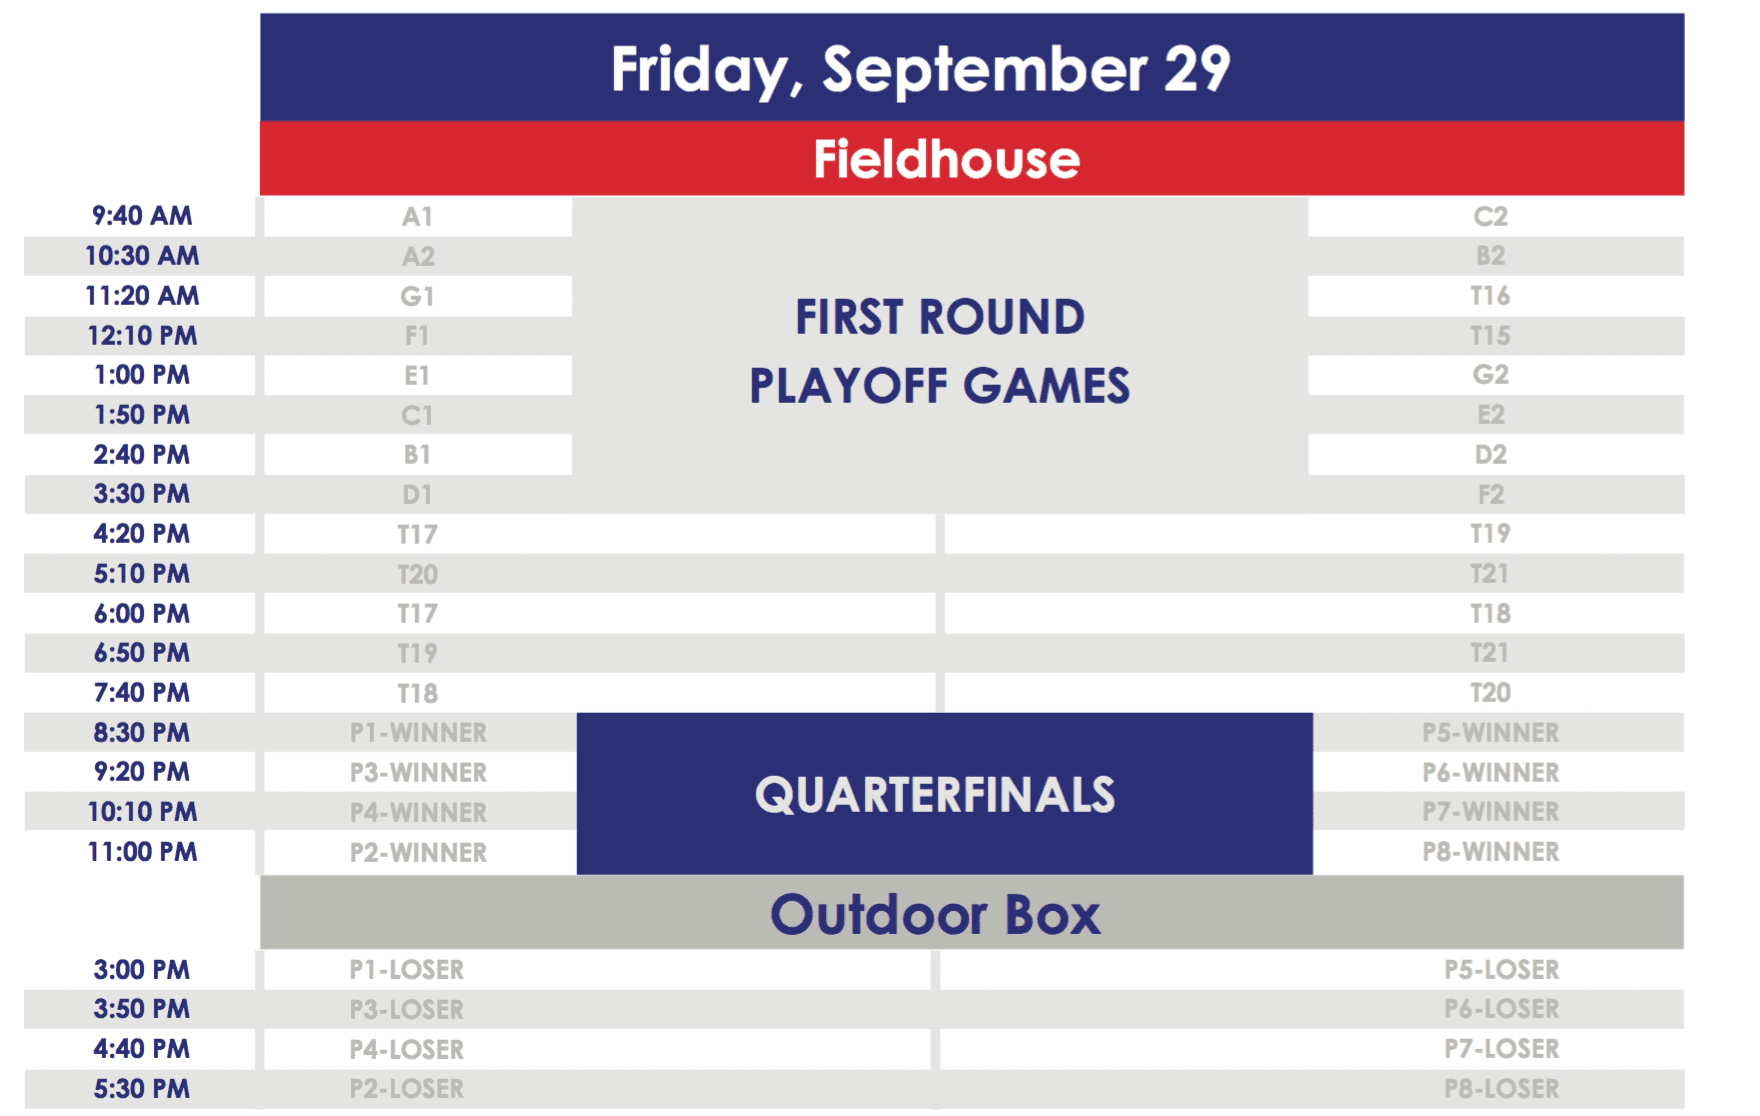 2017 LASNAI Schedule - Friday, September 29